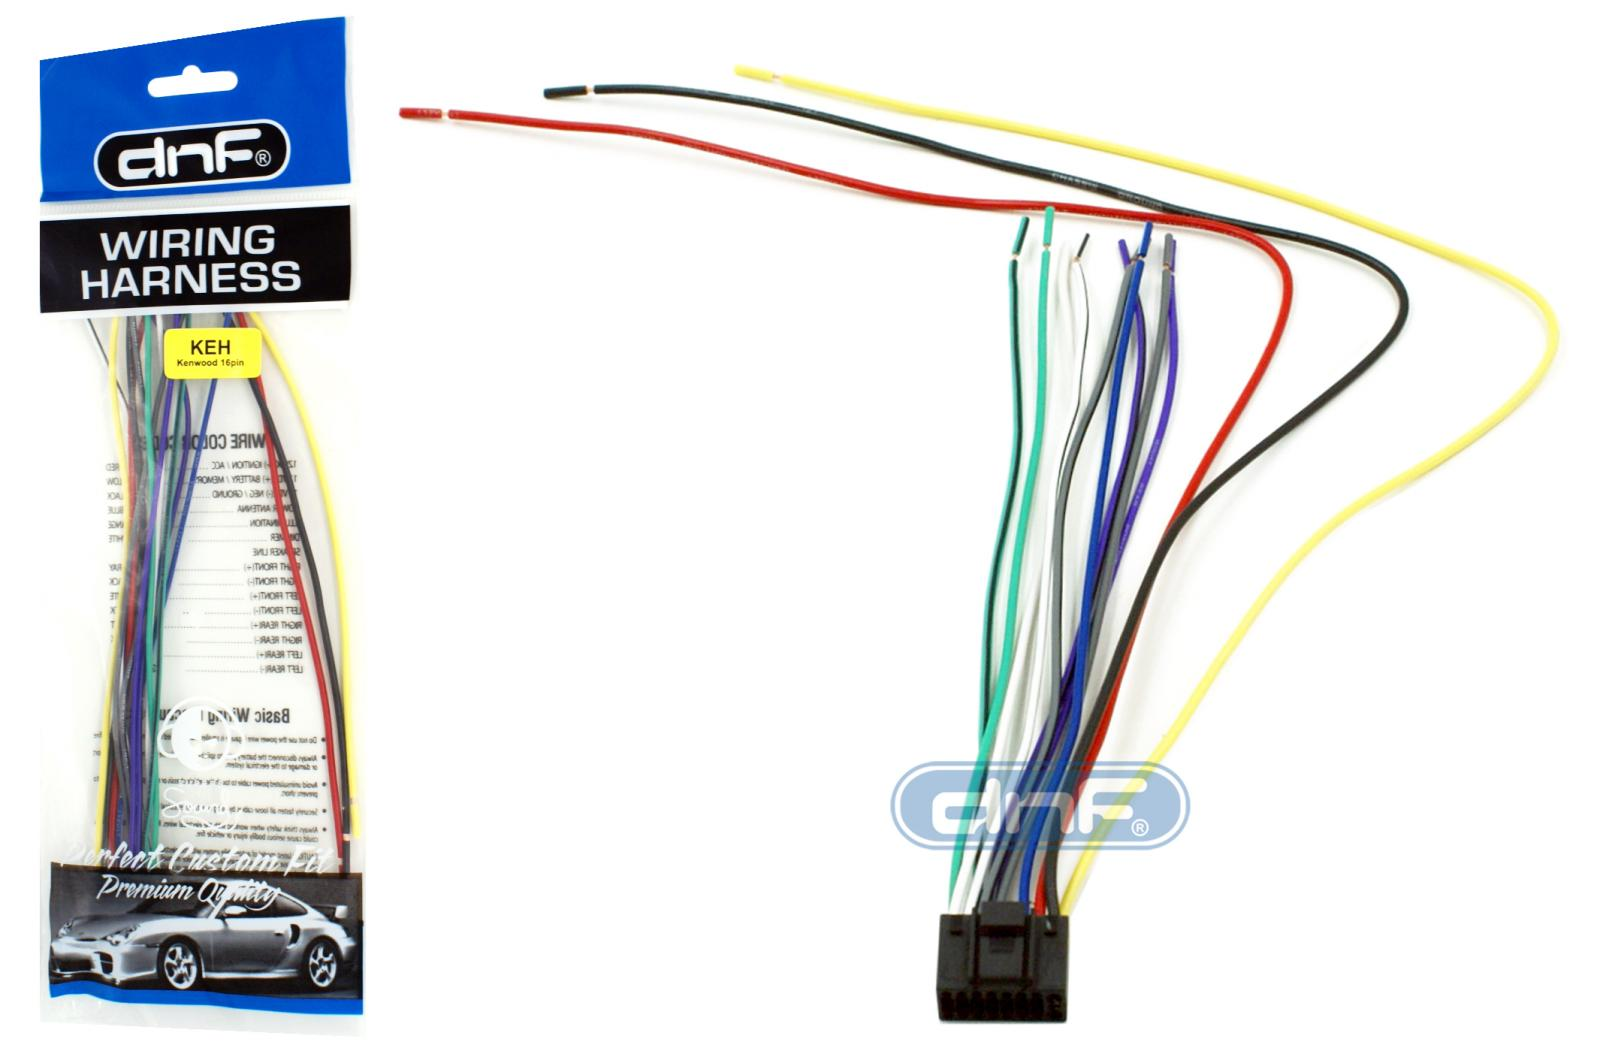 kenwood wiring harness 16 pin copper kdc mp205 kdc mp208 kdc mp232 kenwood kdc 152 wiring-diagram kenwood compatibility chart